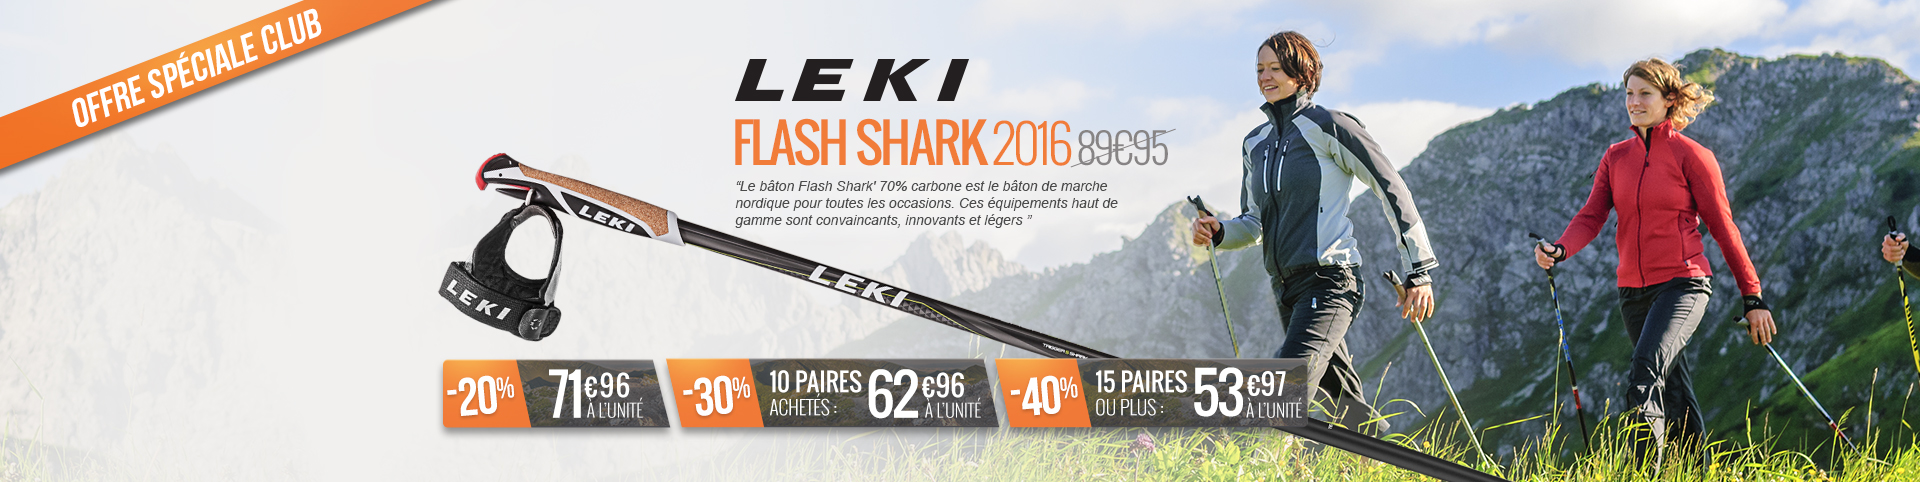 LEKI FLASH SHARK 2016